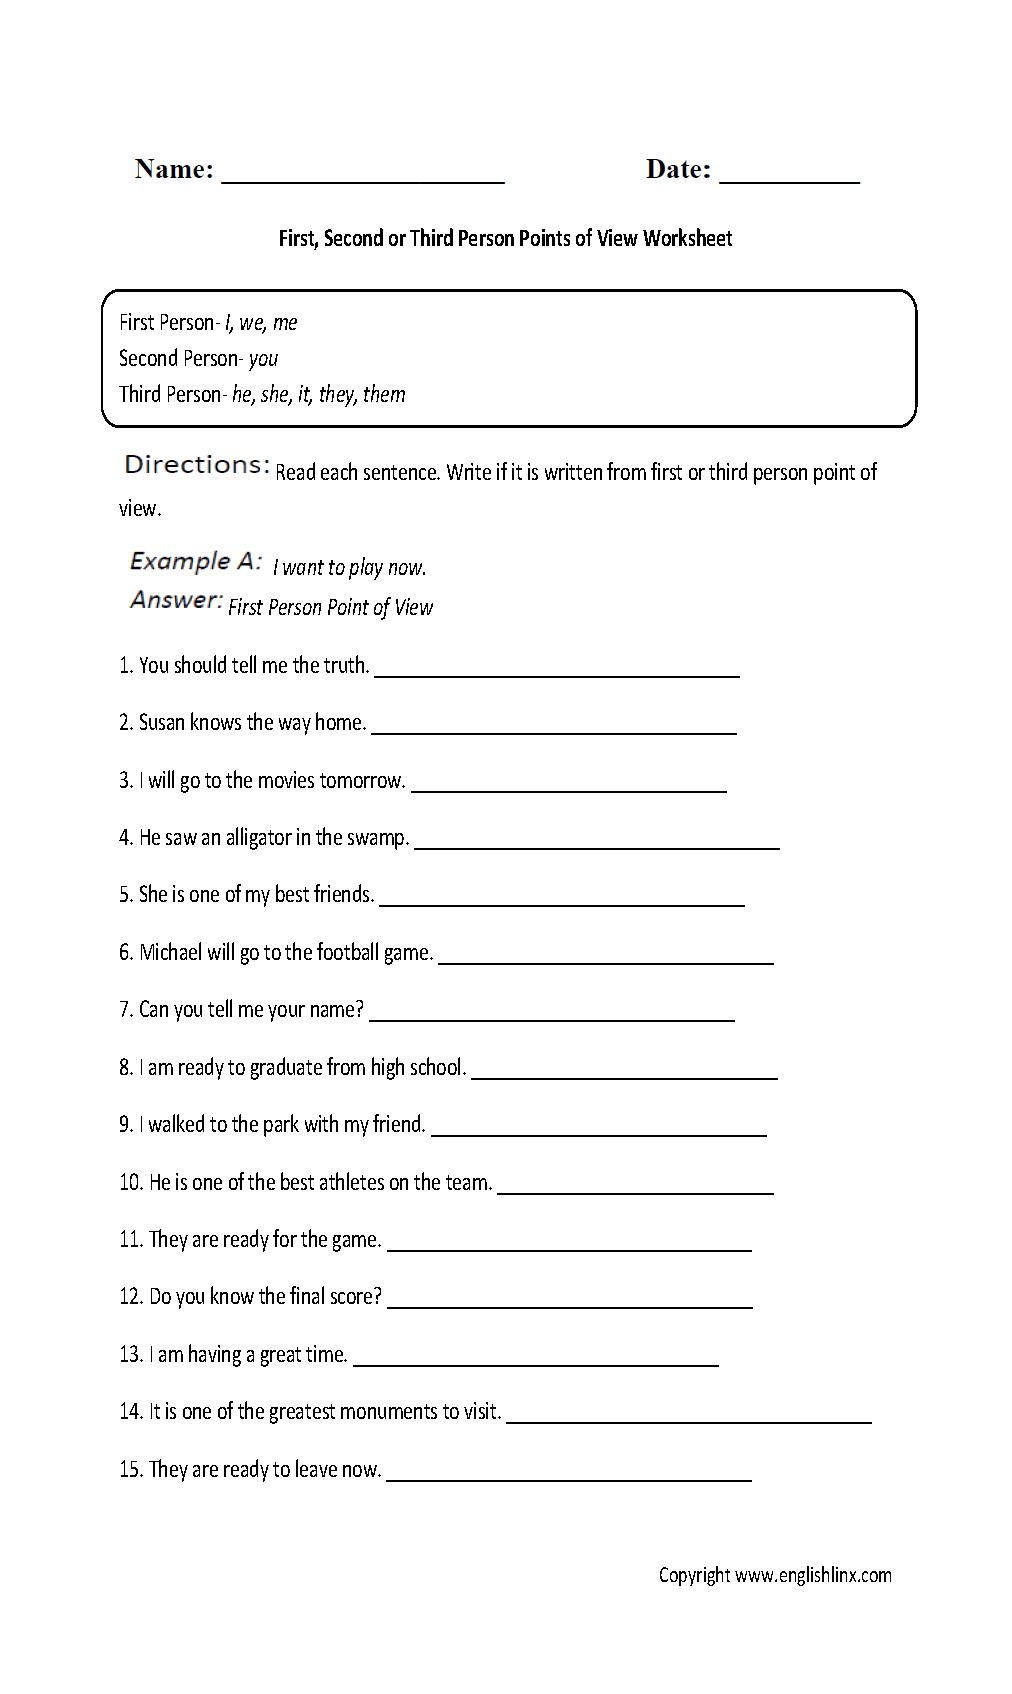 Weirdmailus  Scenic Englishlinxcom  Point Of View Worksheets With Marvelous Point Of View Worksheet With Cute Number Words Worksheets Kindergarten Also Pythagorean Theorem Problem Solving Worksheet In Addition Multiplication Worksheets With Answer Key And Relative Pronouns Worksheets Printable As Well As Igcse Mathematics Worksheets Additionally Adverb Clauses Worksheets From Englishlinxcom With Weirdmailus  Marvelous Englishlinxcom  Point Of View Worksheets With Cute Point Of View Worksheet And Scenic Number Words Worksheets Kindergarten Also Pythagorean Theorem Problem Solving Worksheet In Addition Multiplication Worksheets With Answer Key From Englishlinxcom